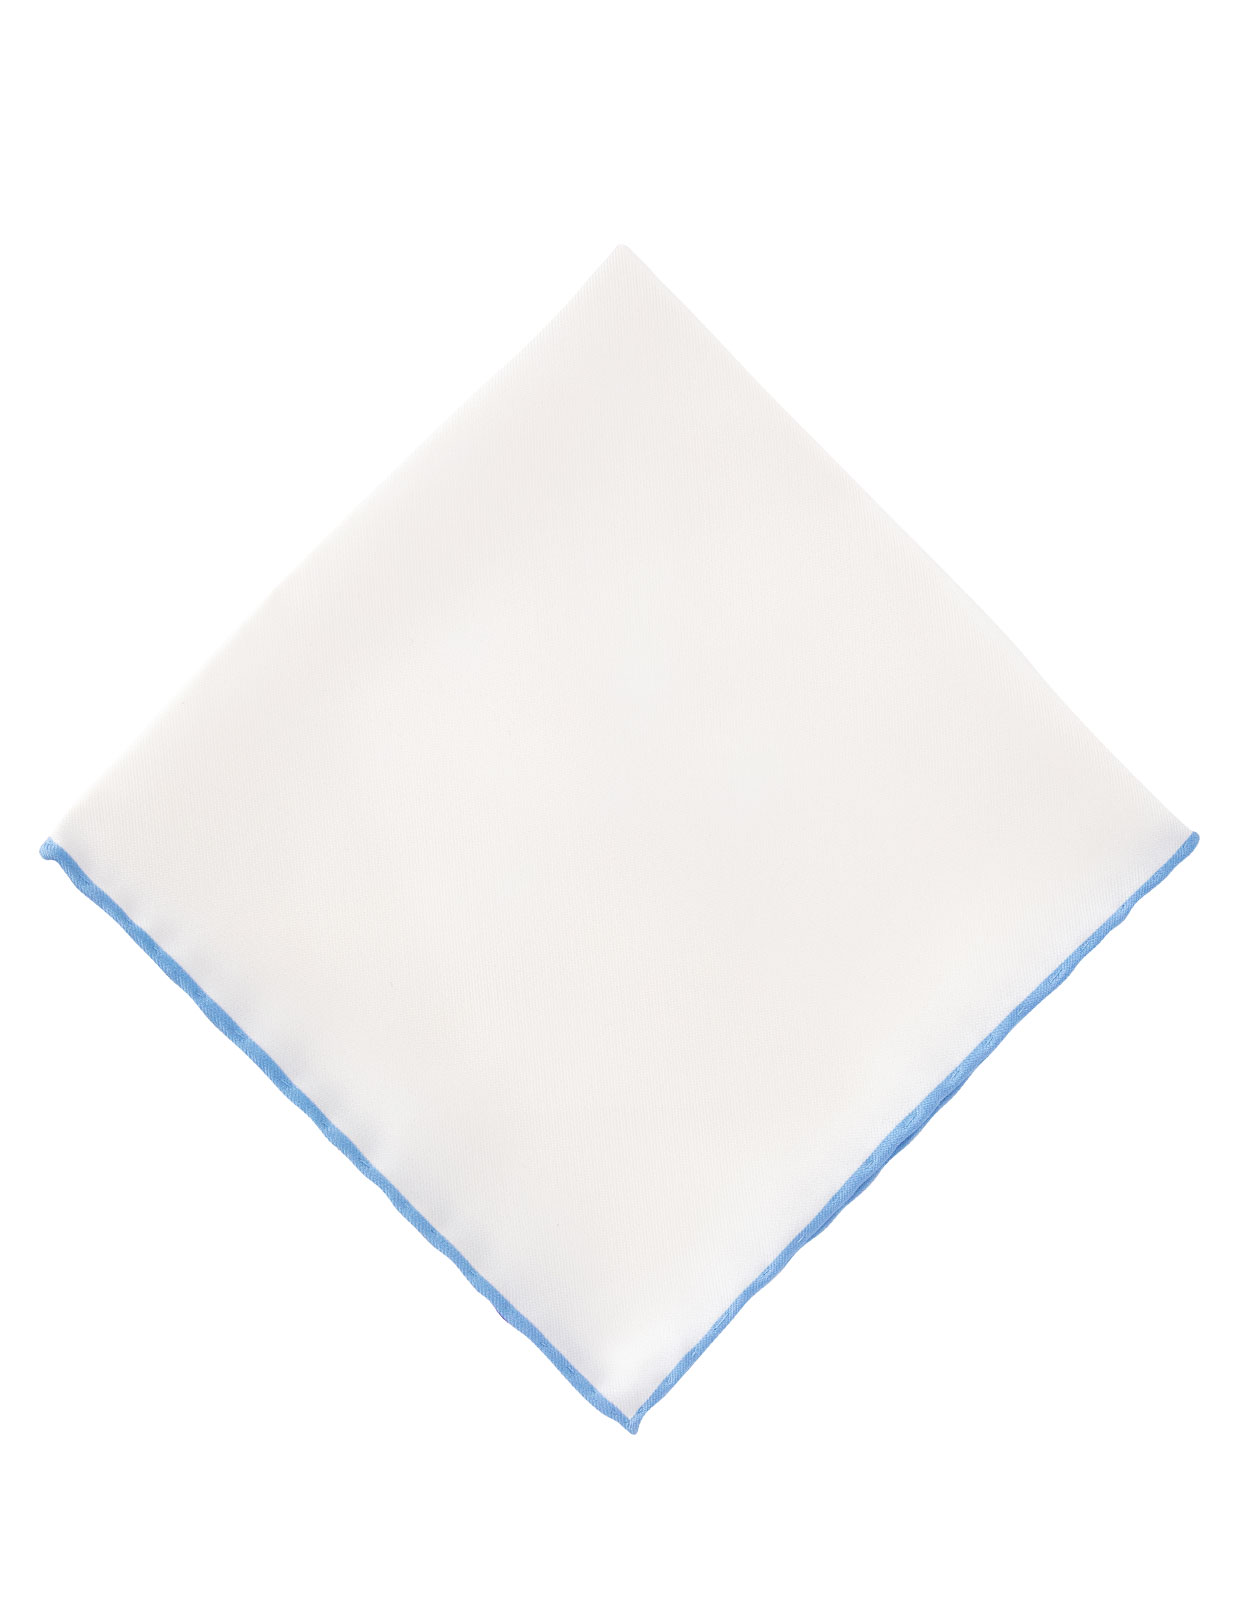 Pocket Square Silk Colored Edging White/Light Blue